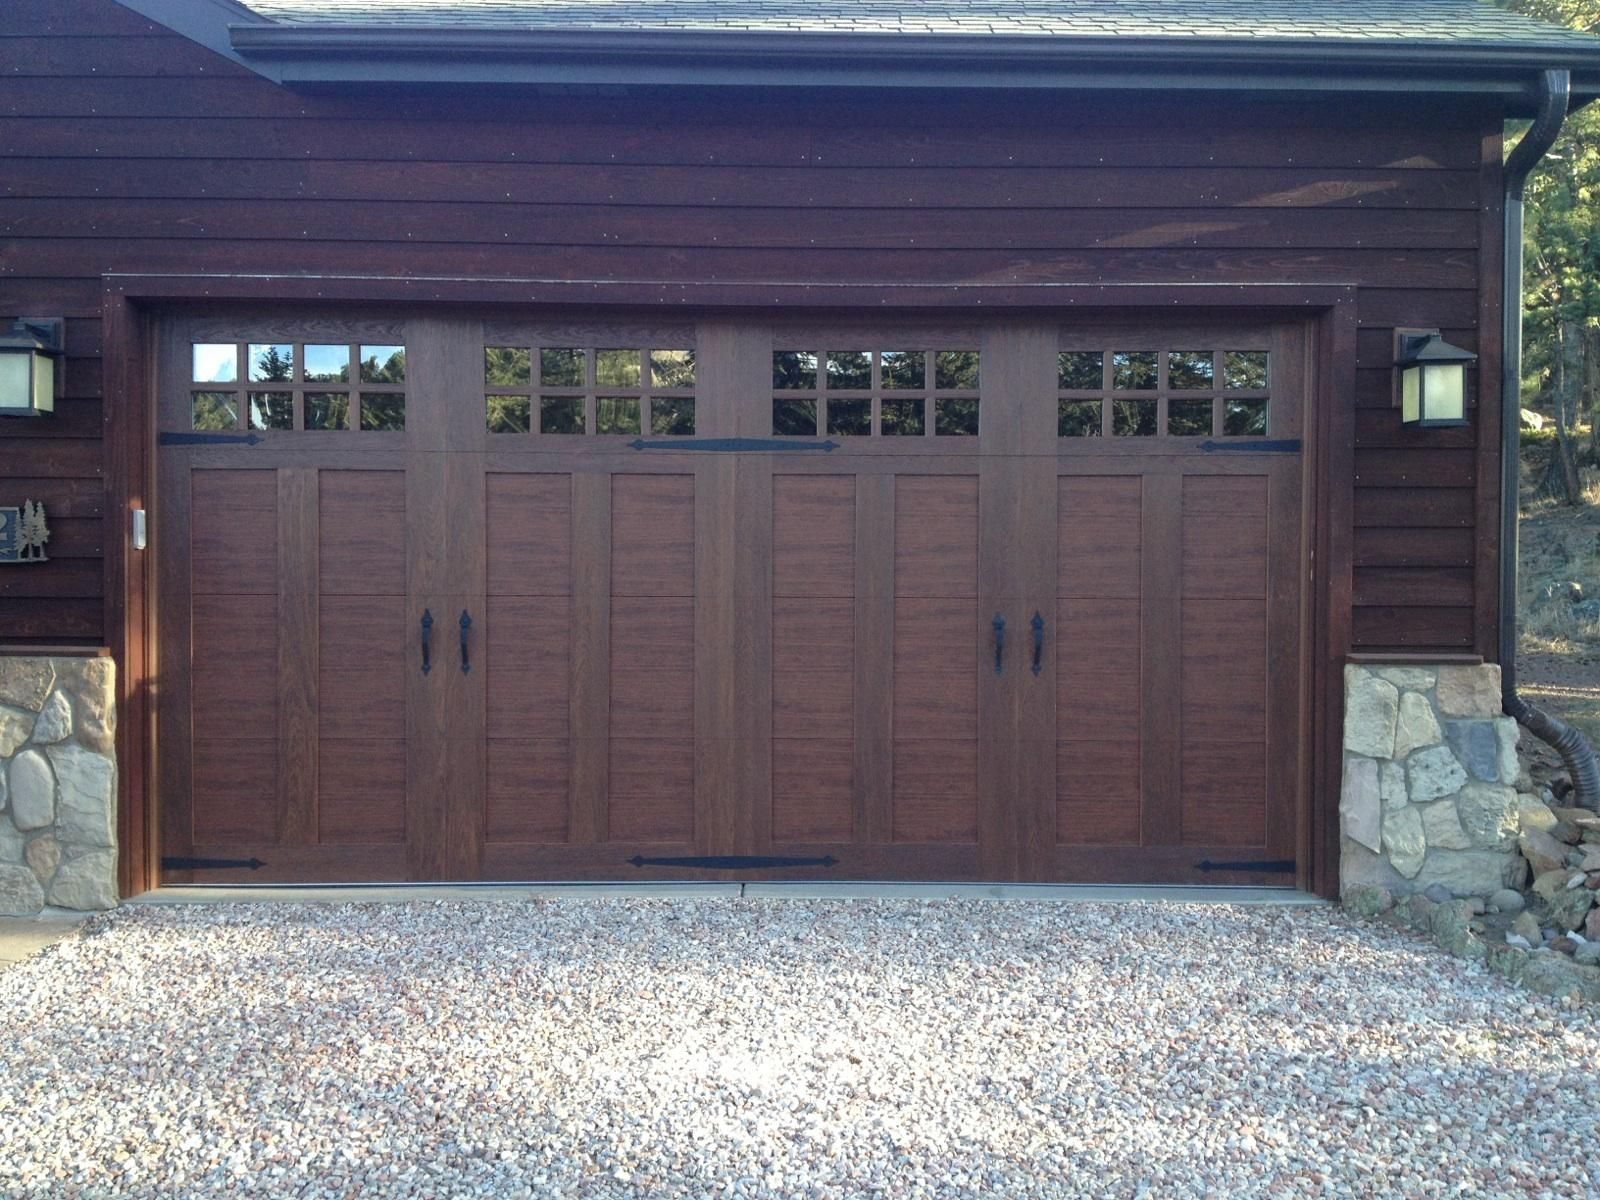 Faux Wood Garage Doors - Clopay canyon ridge collection ultra grain series faux wood garage door constructed from insulated